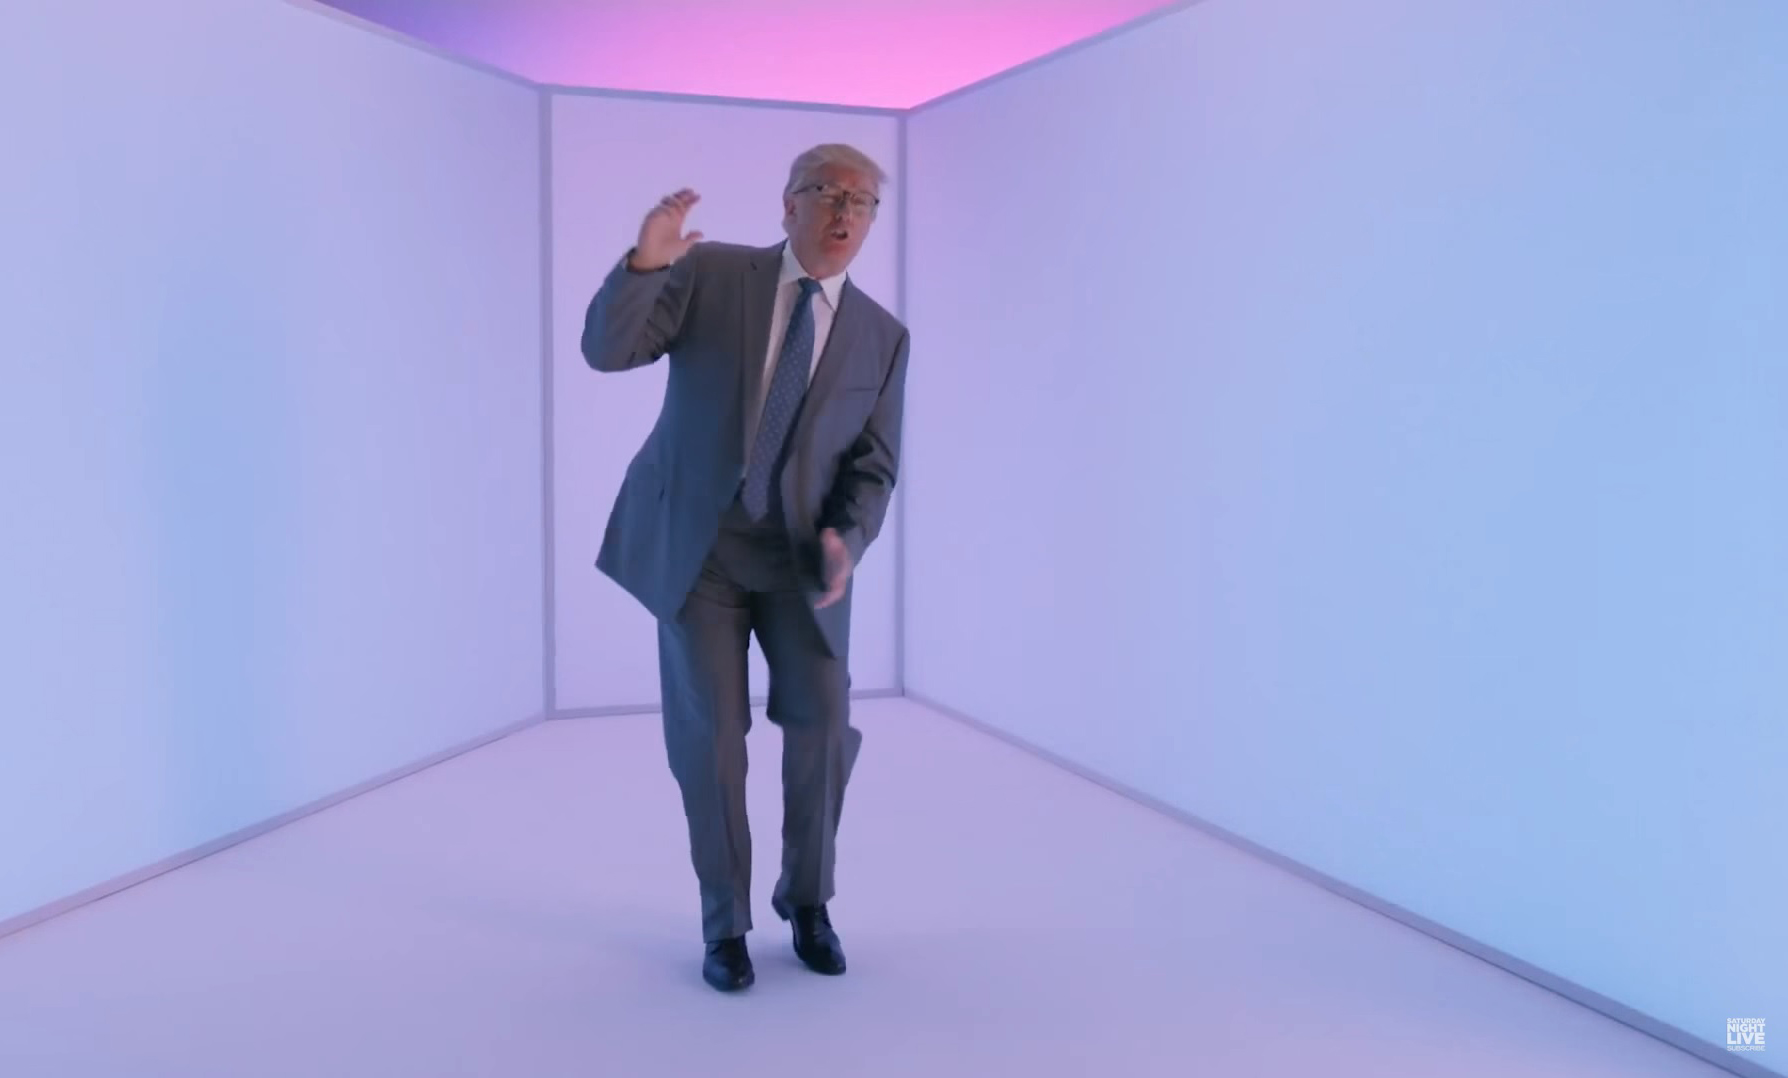 Donald Trump shows off his dad dance moves in 'SNL' 'Hotline Bling ...